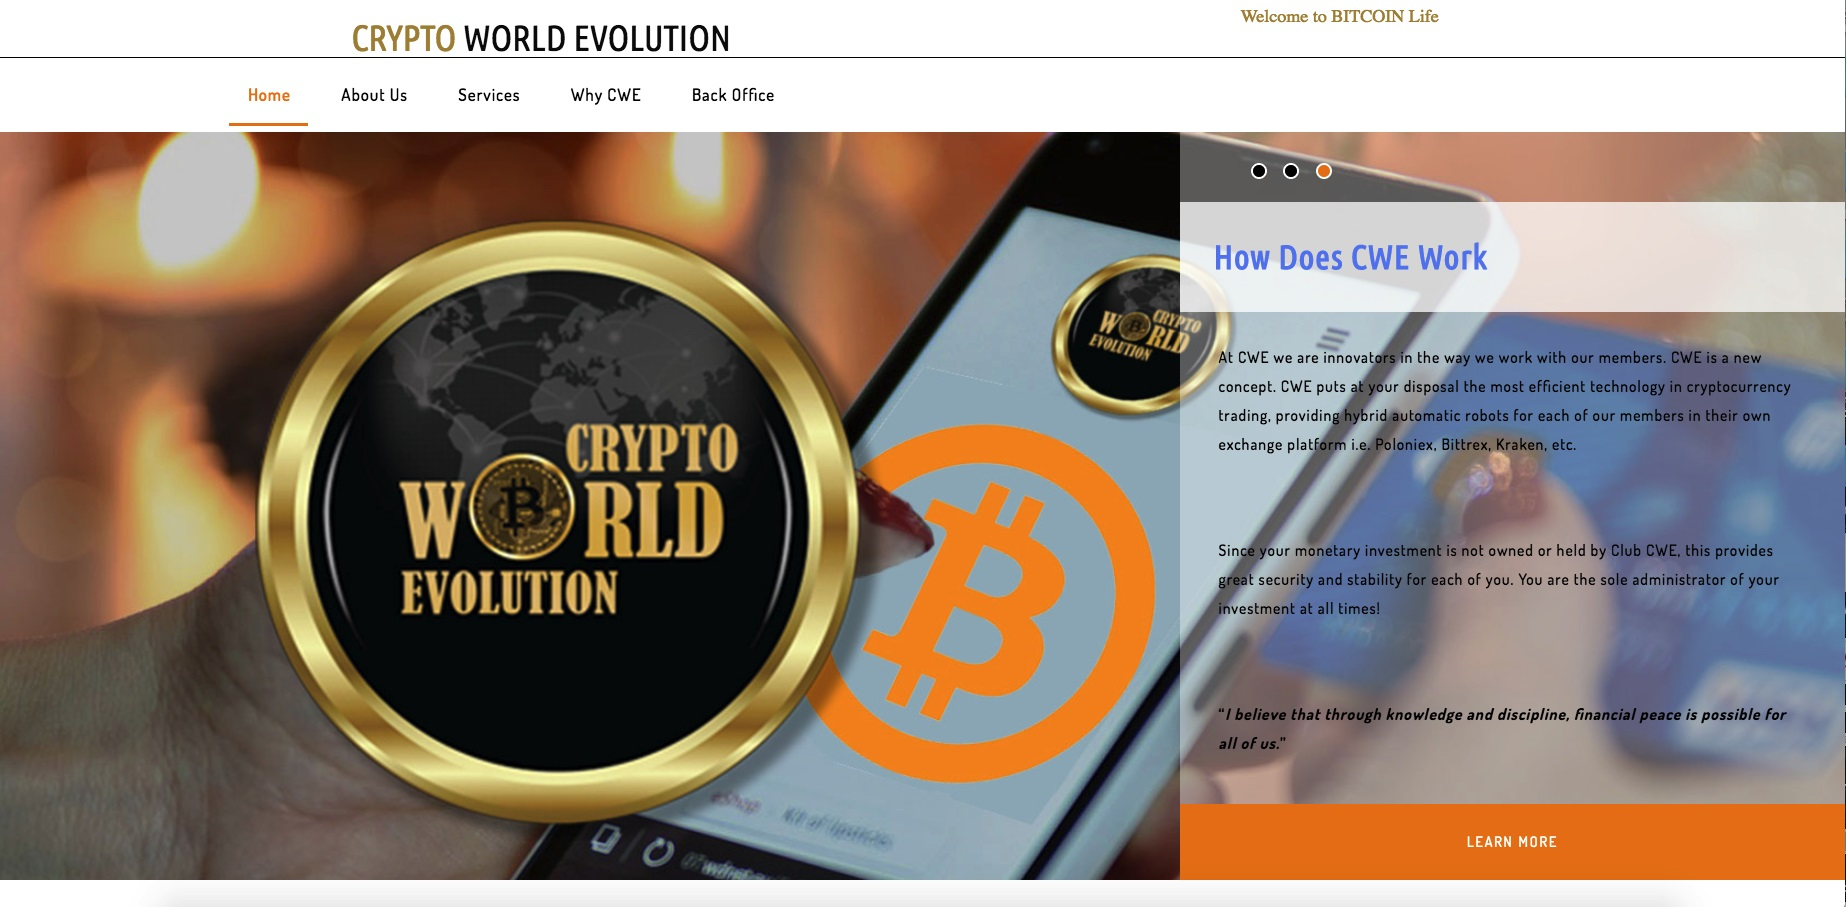 cryptoworldevolution.trade - Crypto World Evolution Trade